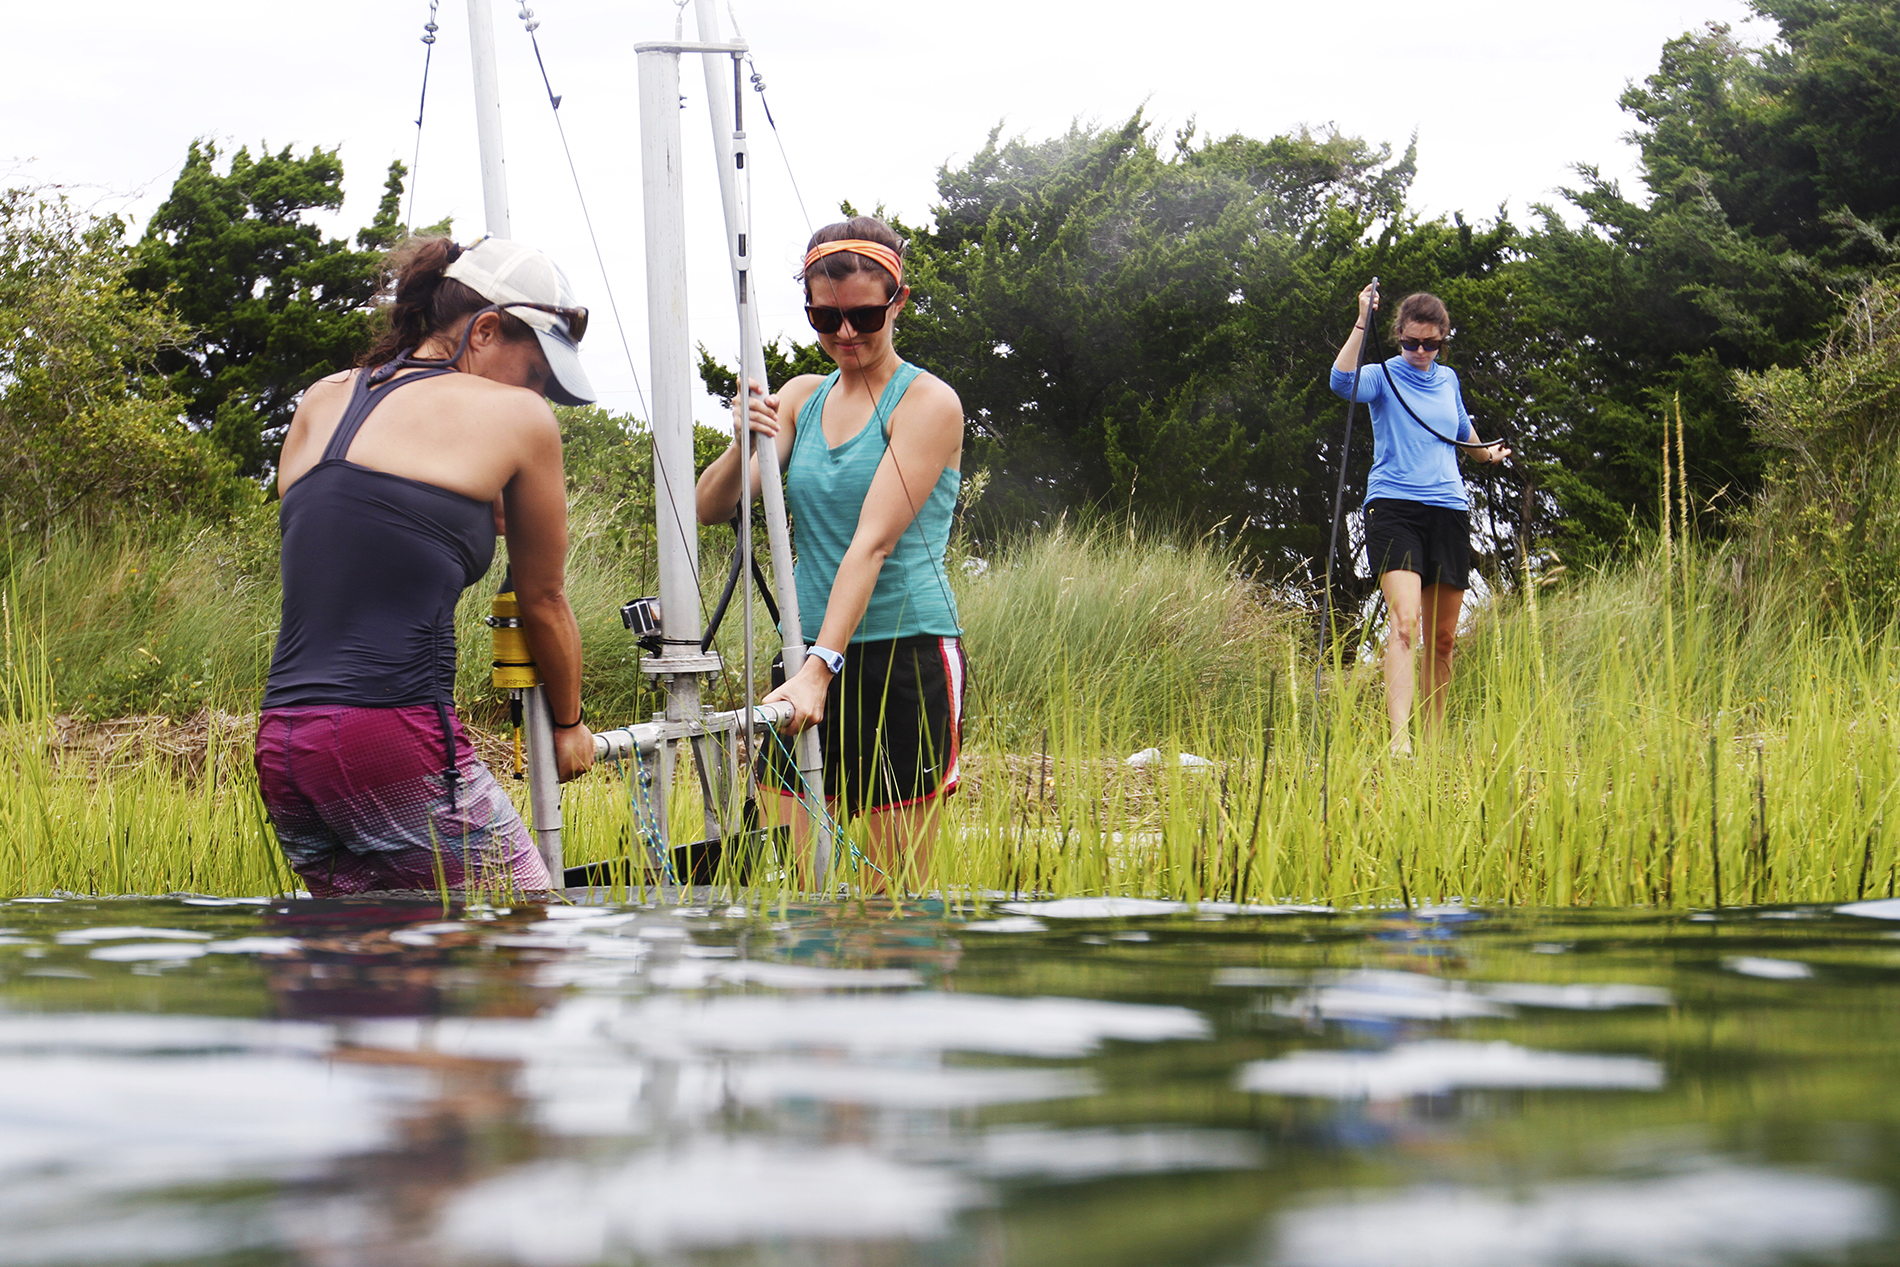 two girls move a rig into a lake, while a third follows with a battery pack